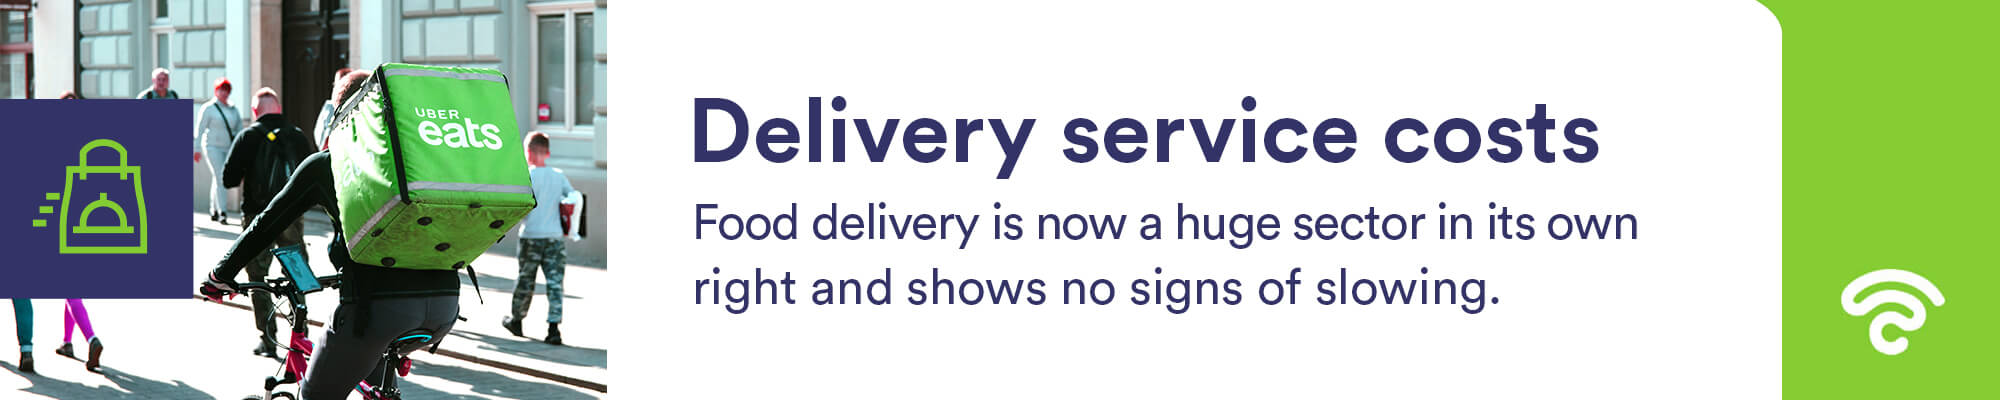 food delivery service costs